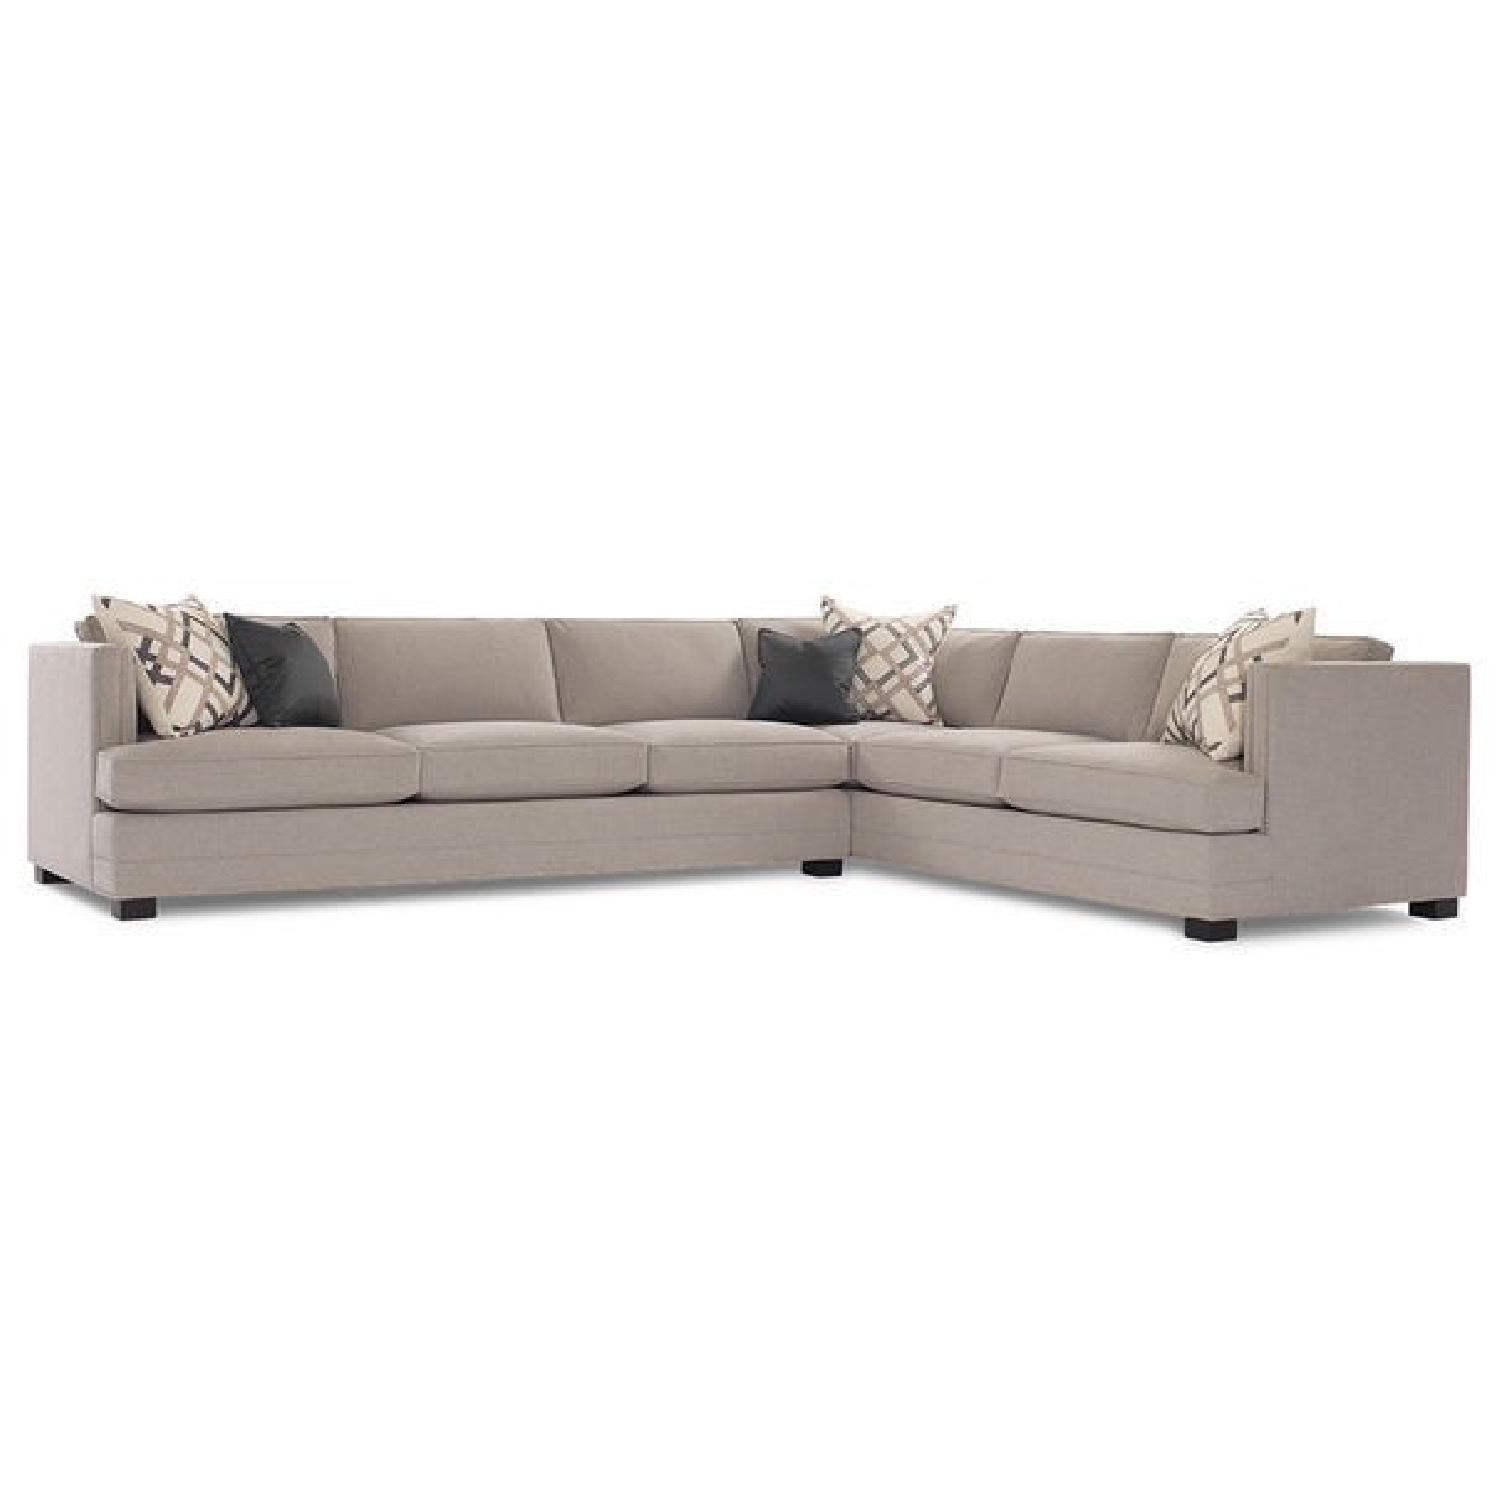 Mitchell Gold + Bob Williams Keaton Sectional In Taupe Grey 0